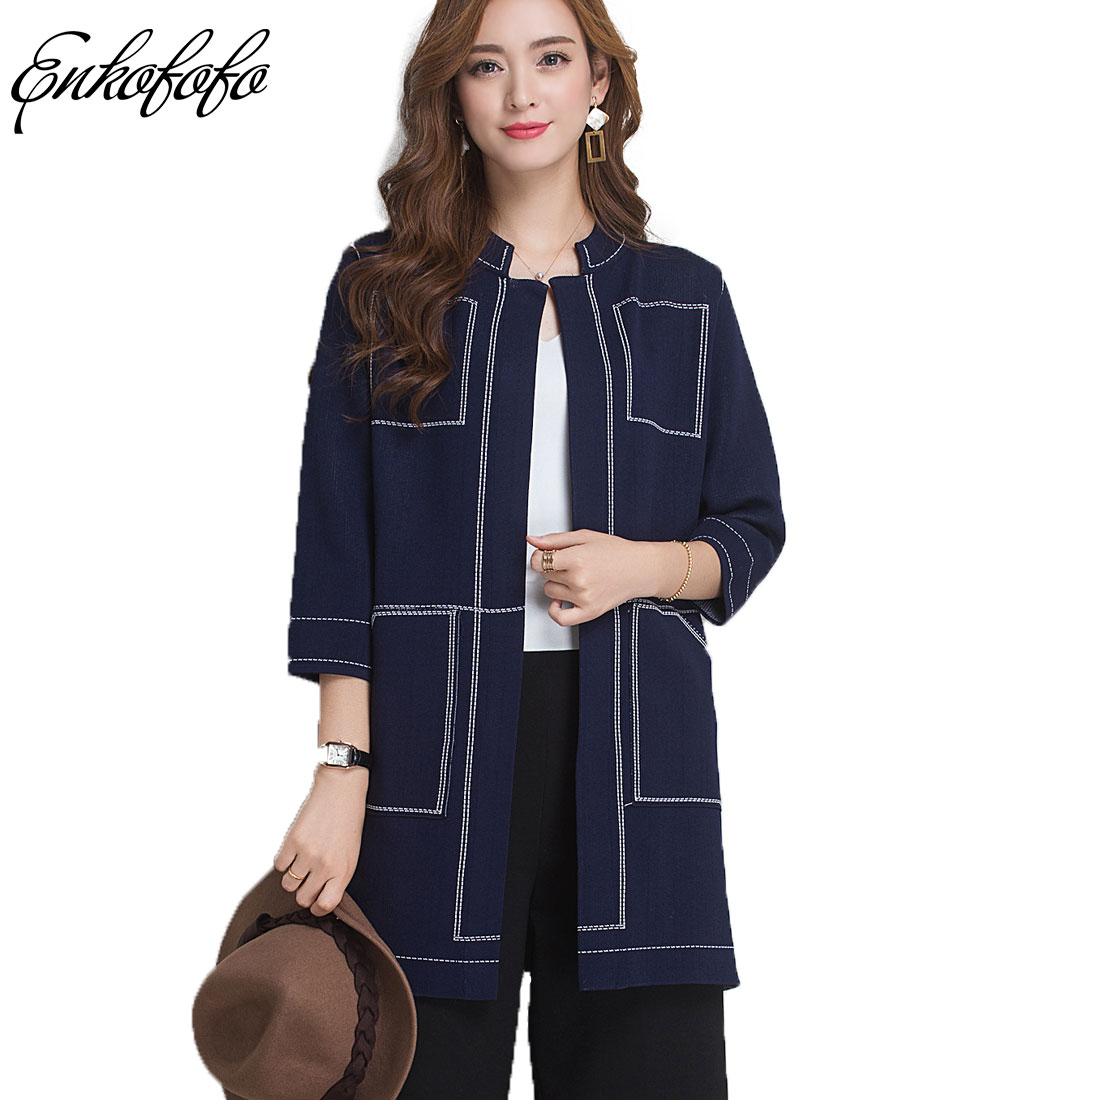 2018 New Spring and Autumn Cardigan Women Casual Long Knitted Loose Solid Color Pockets Design Sweater Jacket Black Navy Blue